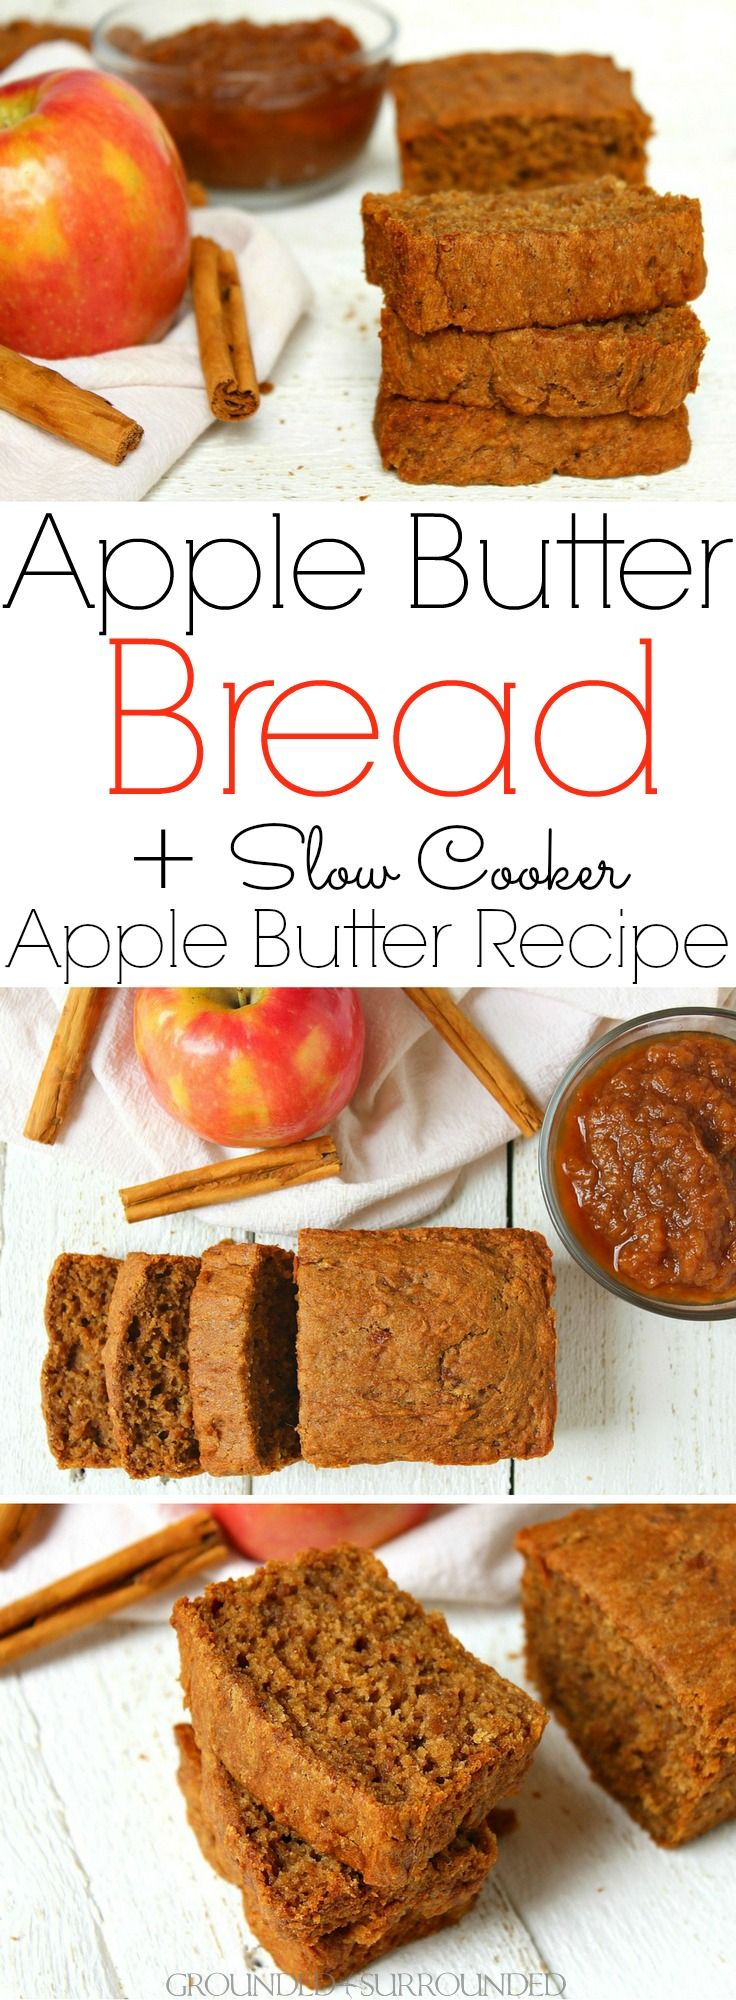 The BEST Apple Butter Bread + Slow Cooker Apple Butter Recipe | This gluten-free…